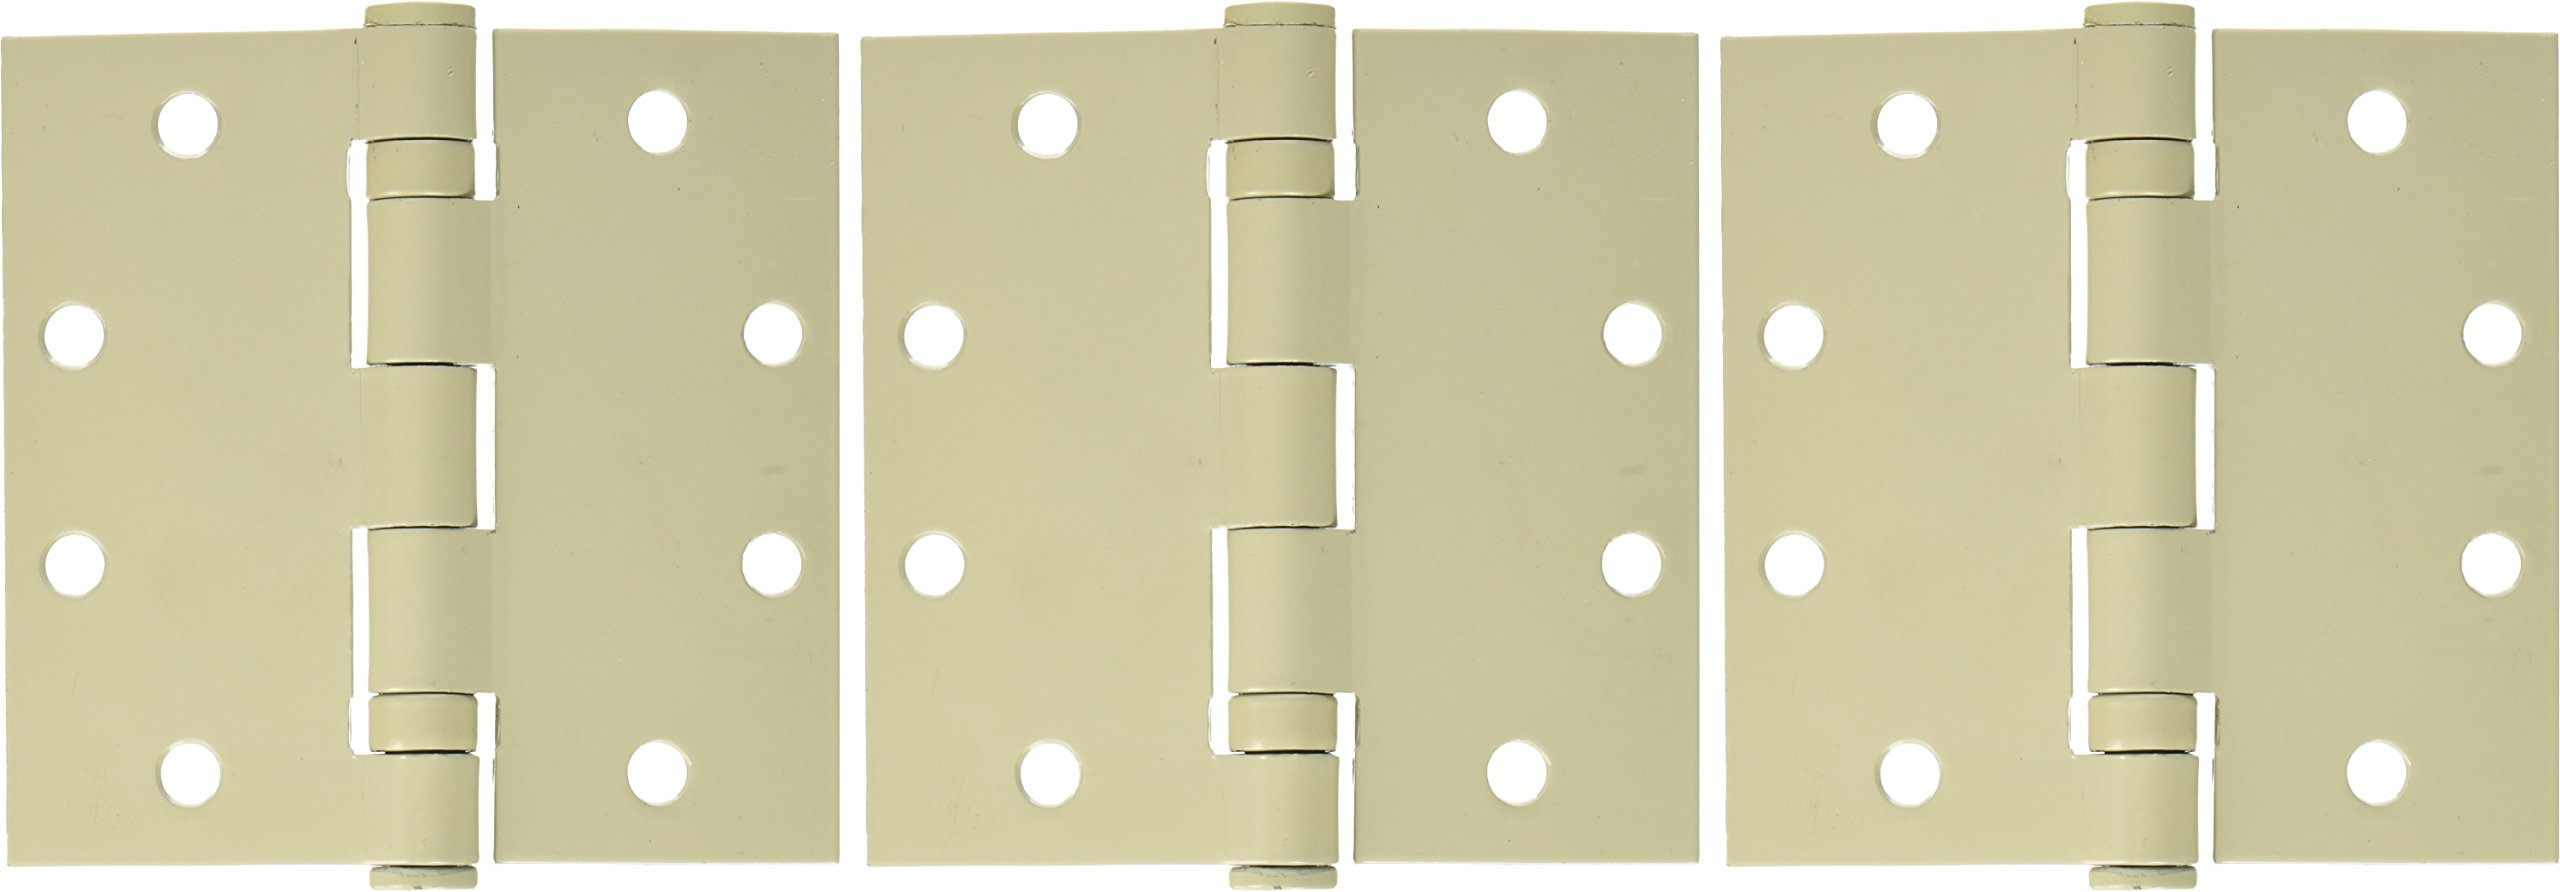 Hager 1279B00450045P000N Architectural Hinge, 4.5''x4.5'', USP NRP Finish (Pack of 3) by Hager